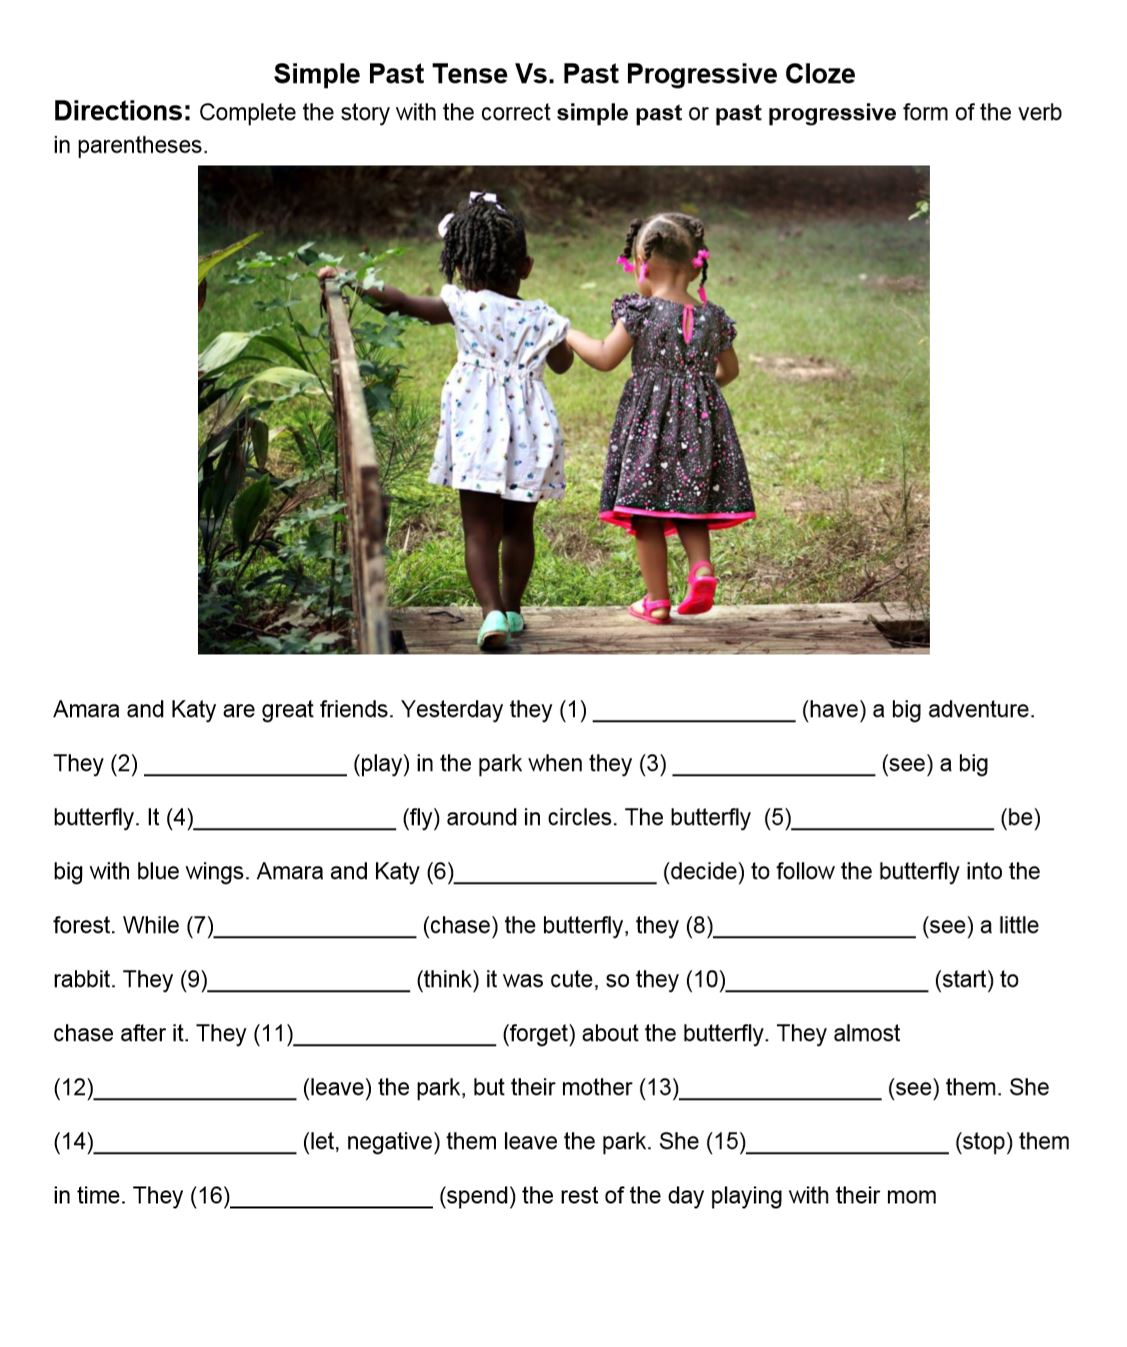 small resolution of Simple Past Tense Cloze Paragraphs - TESOL Planner